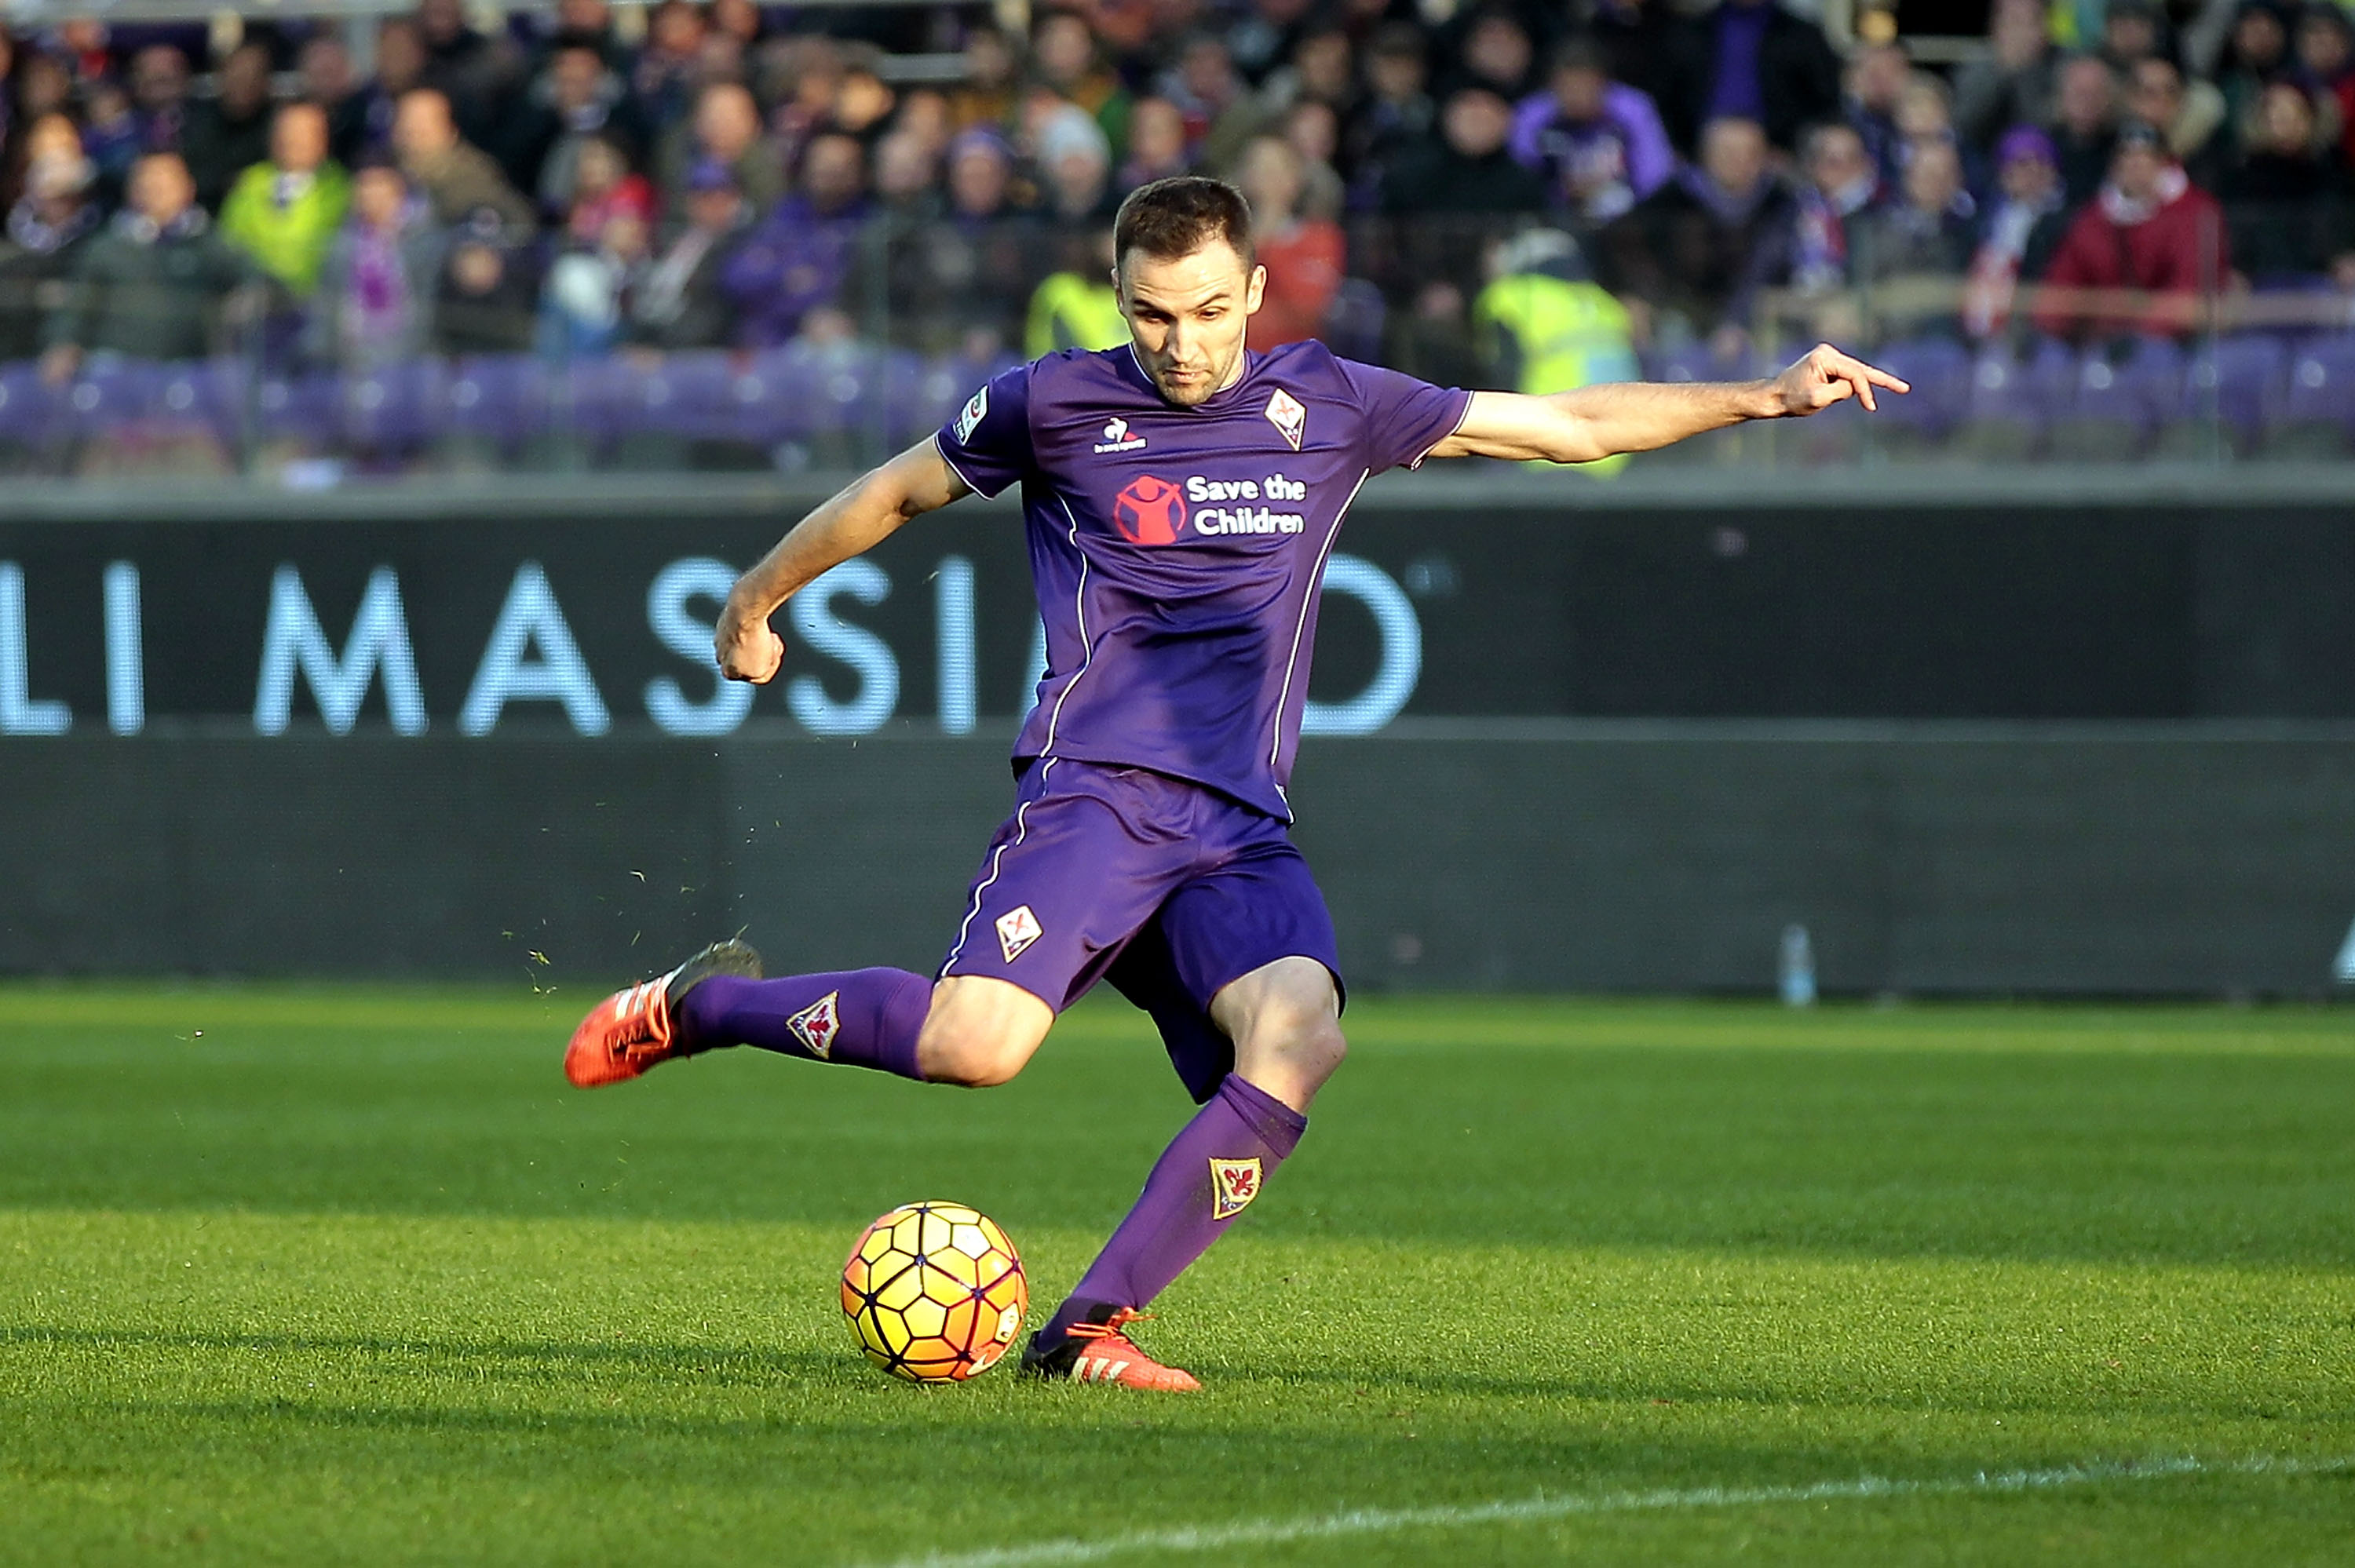 FLORENCE, ITALY - DECEMBER 06: Milan Badelj of ACF Fiorentina scores the opening goal during the Serie A match between ACF Fiorentina and Udinese Calcio at Stadio Artemio Franchi on December 6, 2015 in Florence, Italy. (Photo by Gabriele Maltinti/Getty Images)